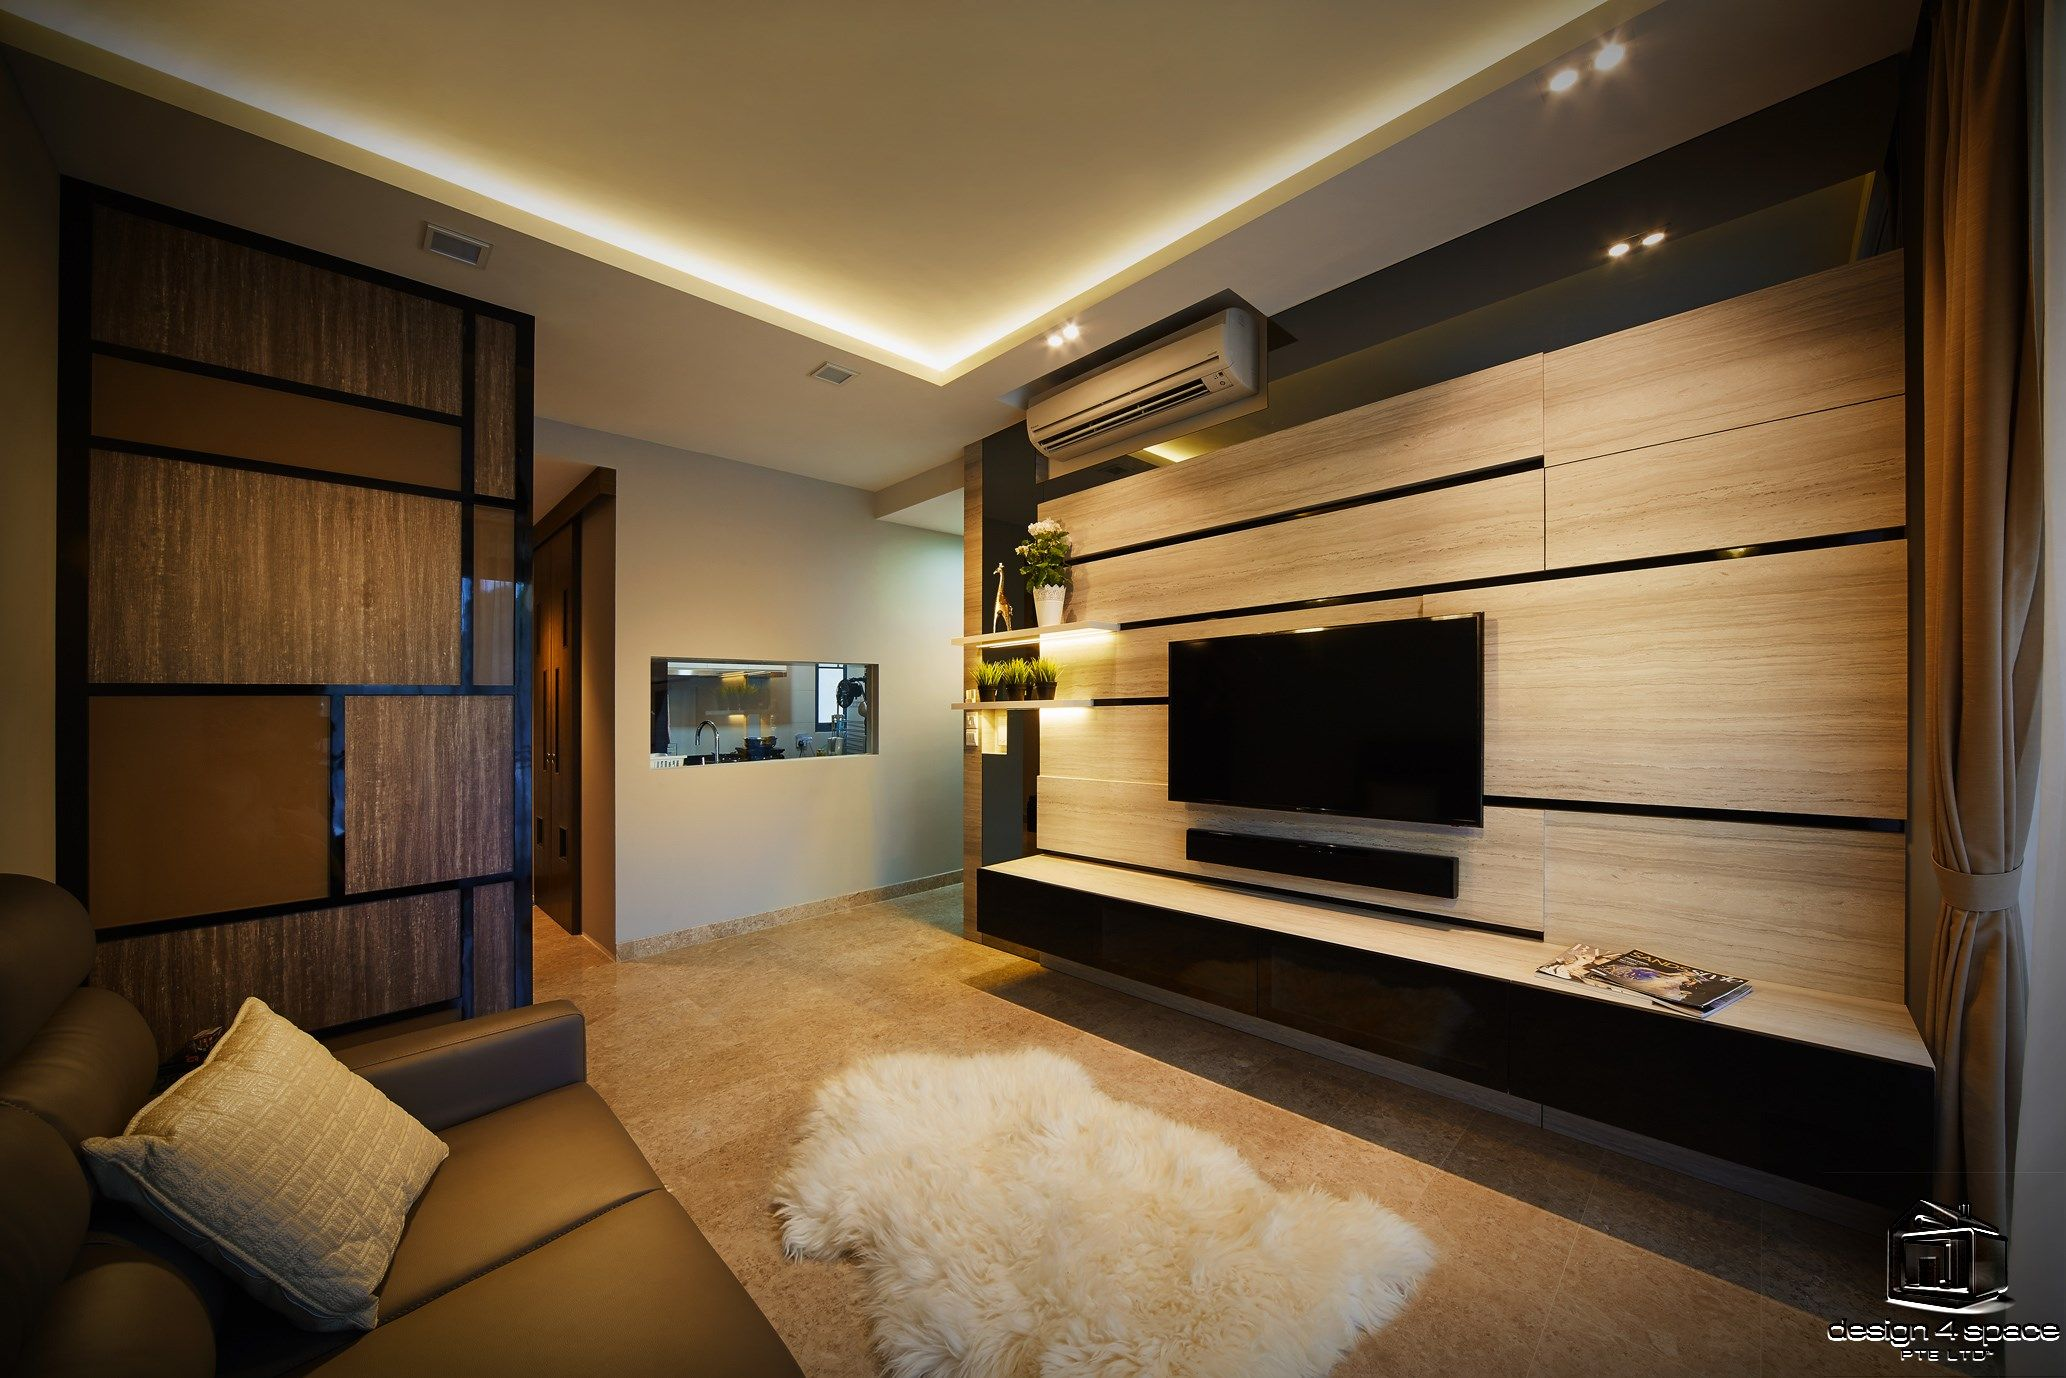 Design4space Is Home Renovation Hdb Interior Design Company In